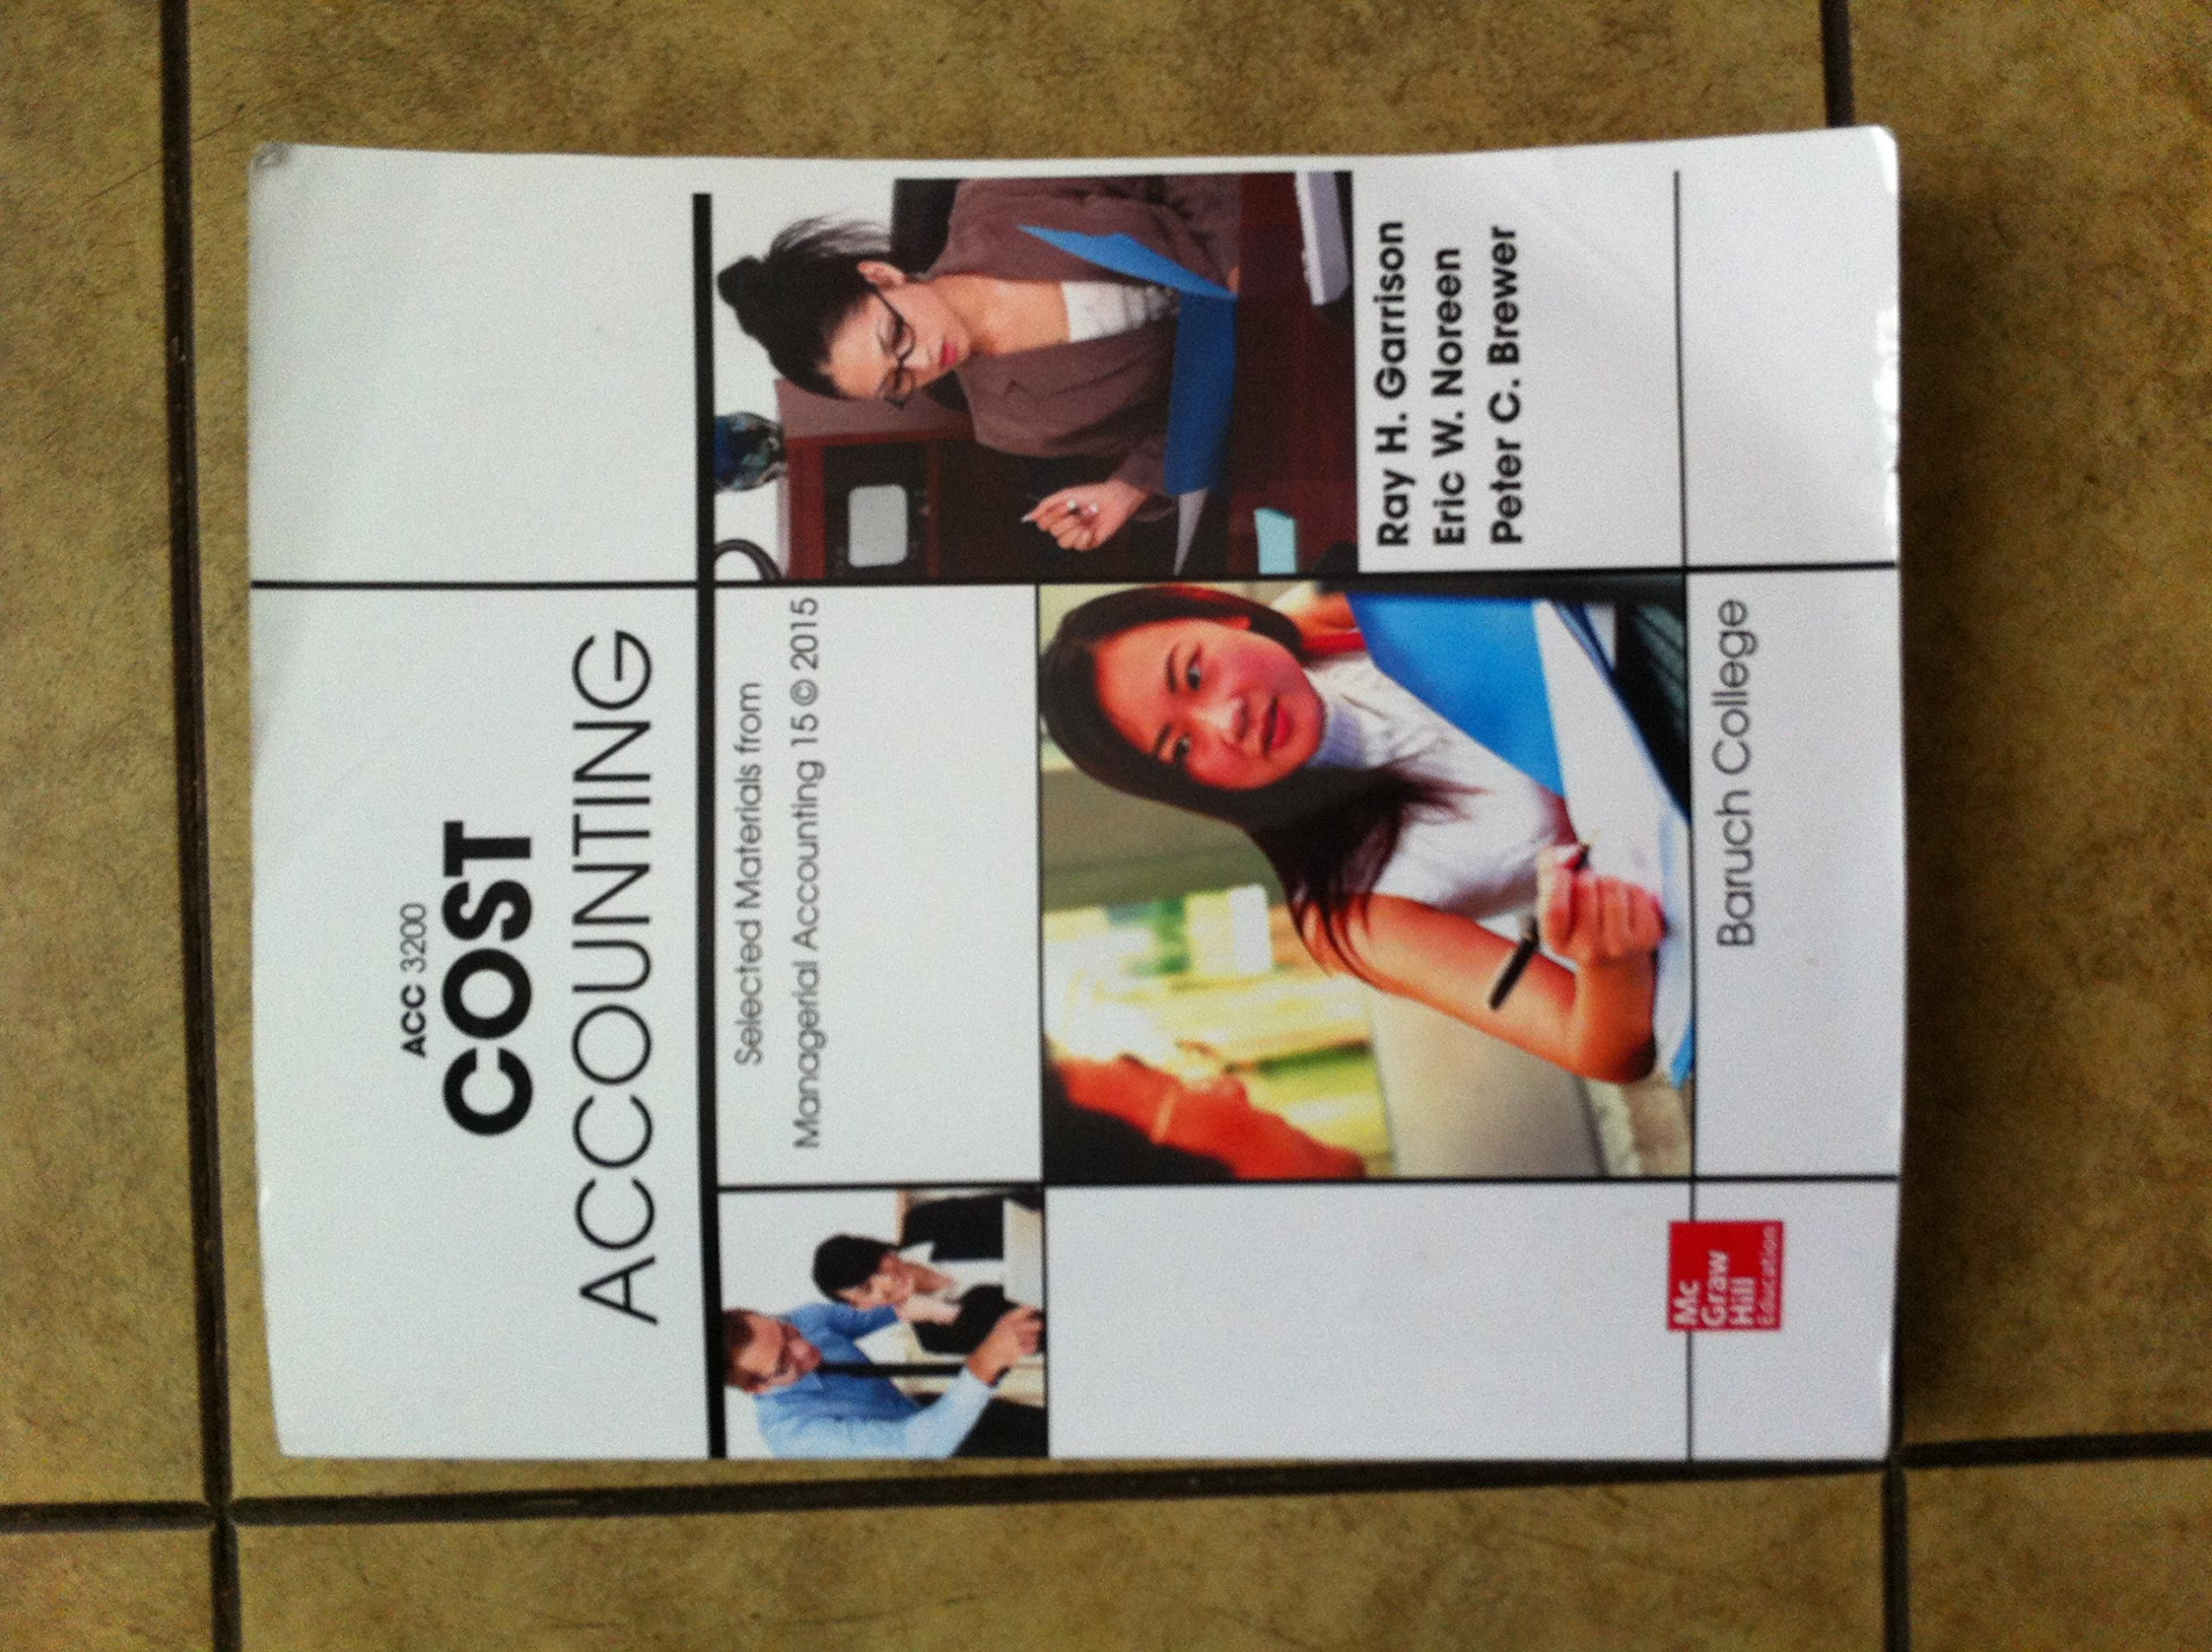 Read Online Managerial Accounting 15th Edition, Cost Accounting ACC3200, Baruch College Custom ebook